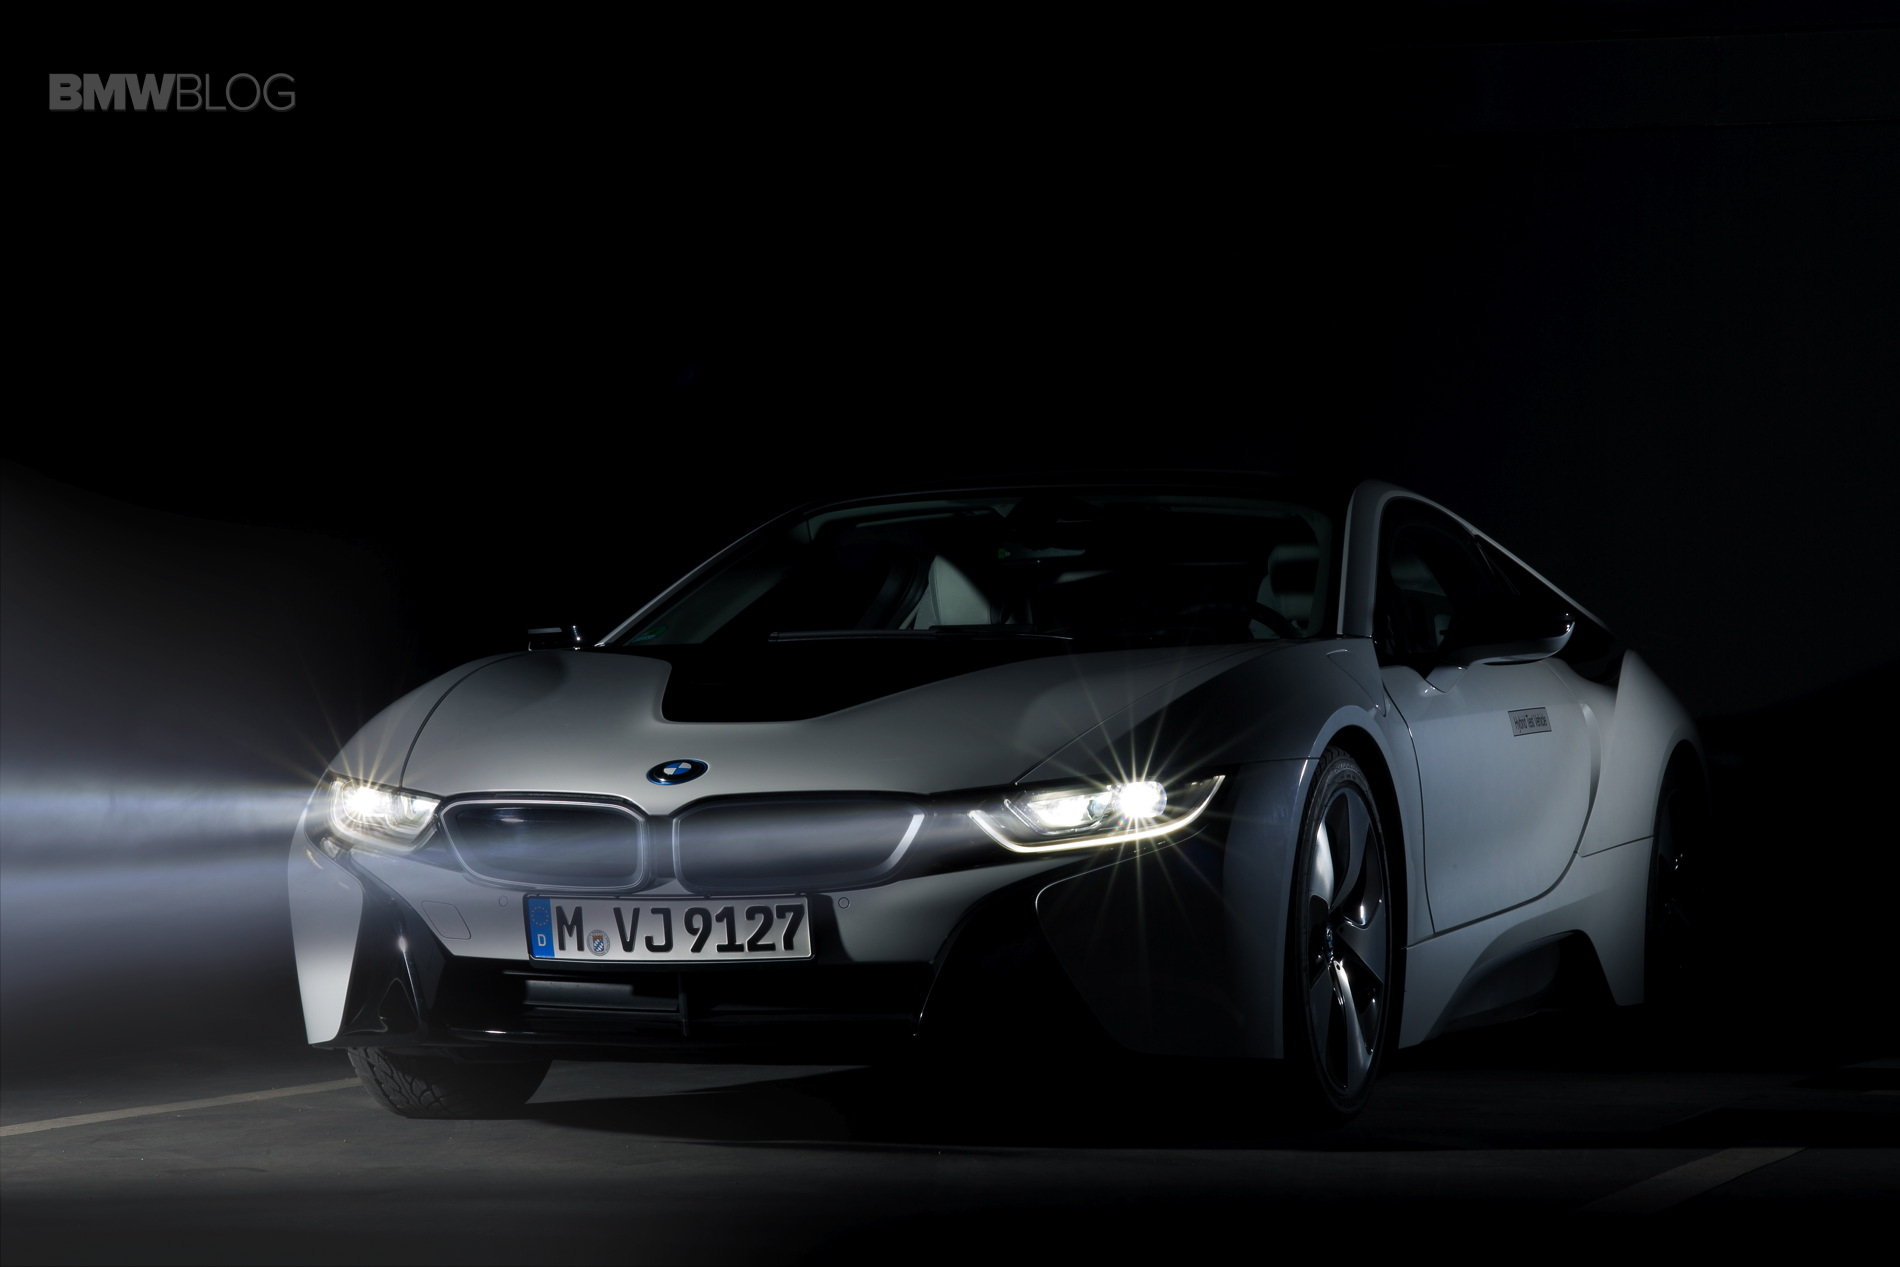 Our Experience With The Bmw I8 Laser Headlights At Night